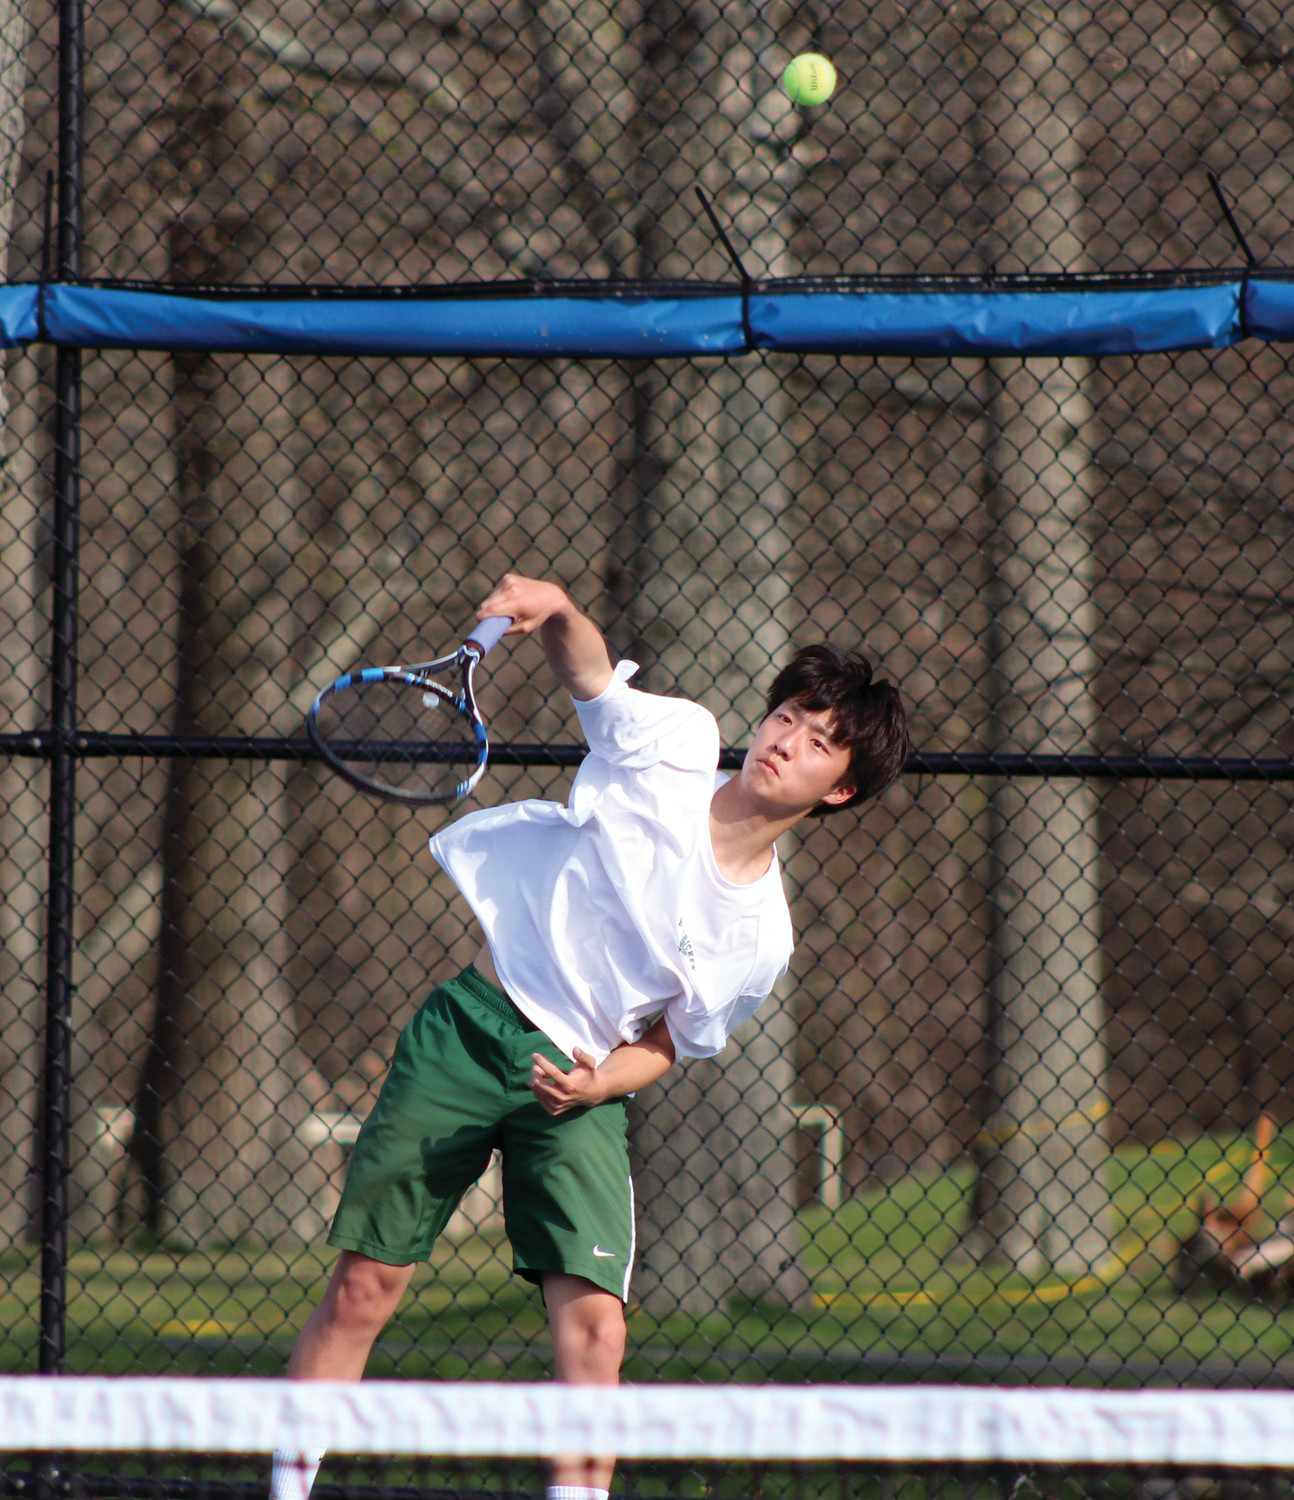 Ben Kim sends a shot over the net in his doubles match.